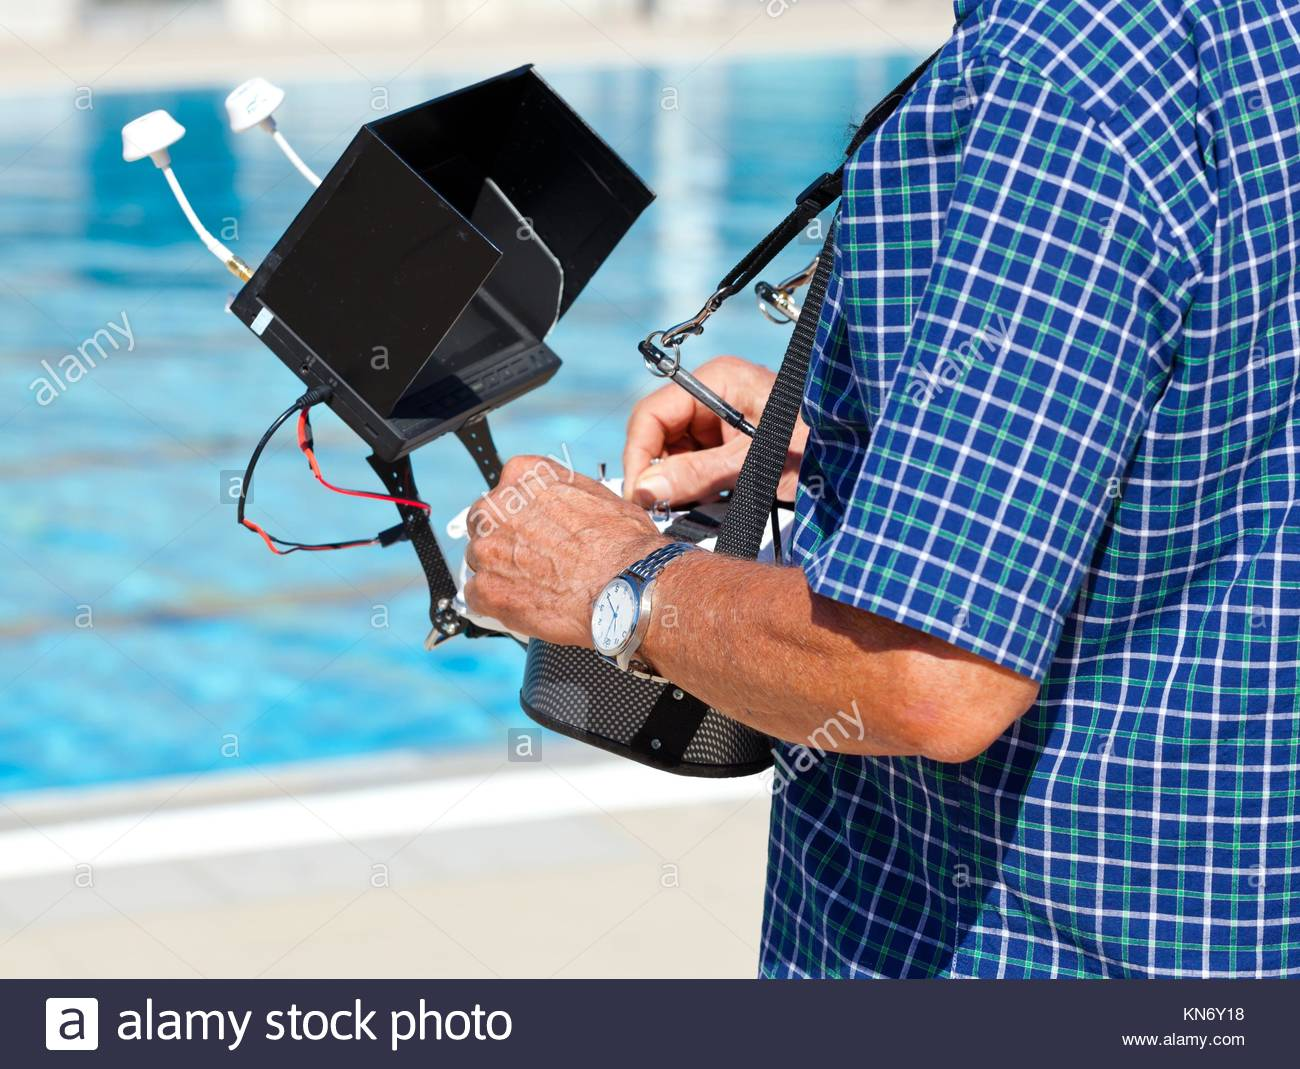 Controlling a remote helicopter drone with LCD preview. - Stock Image